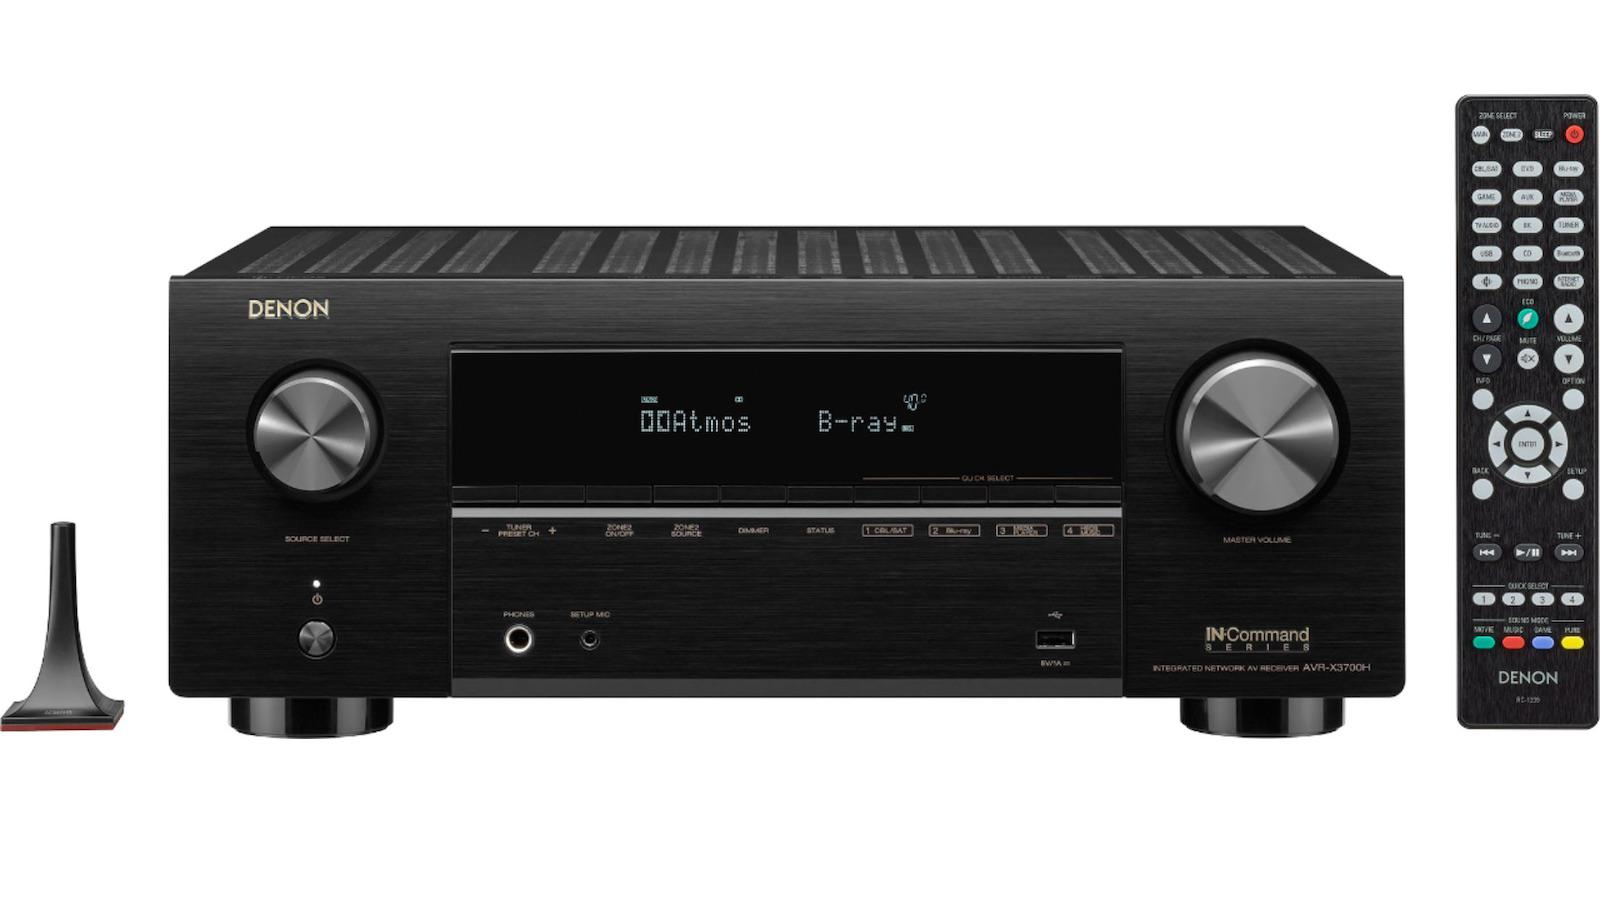 Denon AVR-X3700H 8K A/V Receiver front view with mic and remote